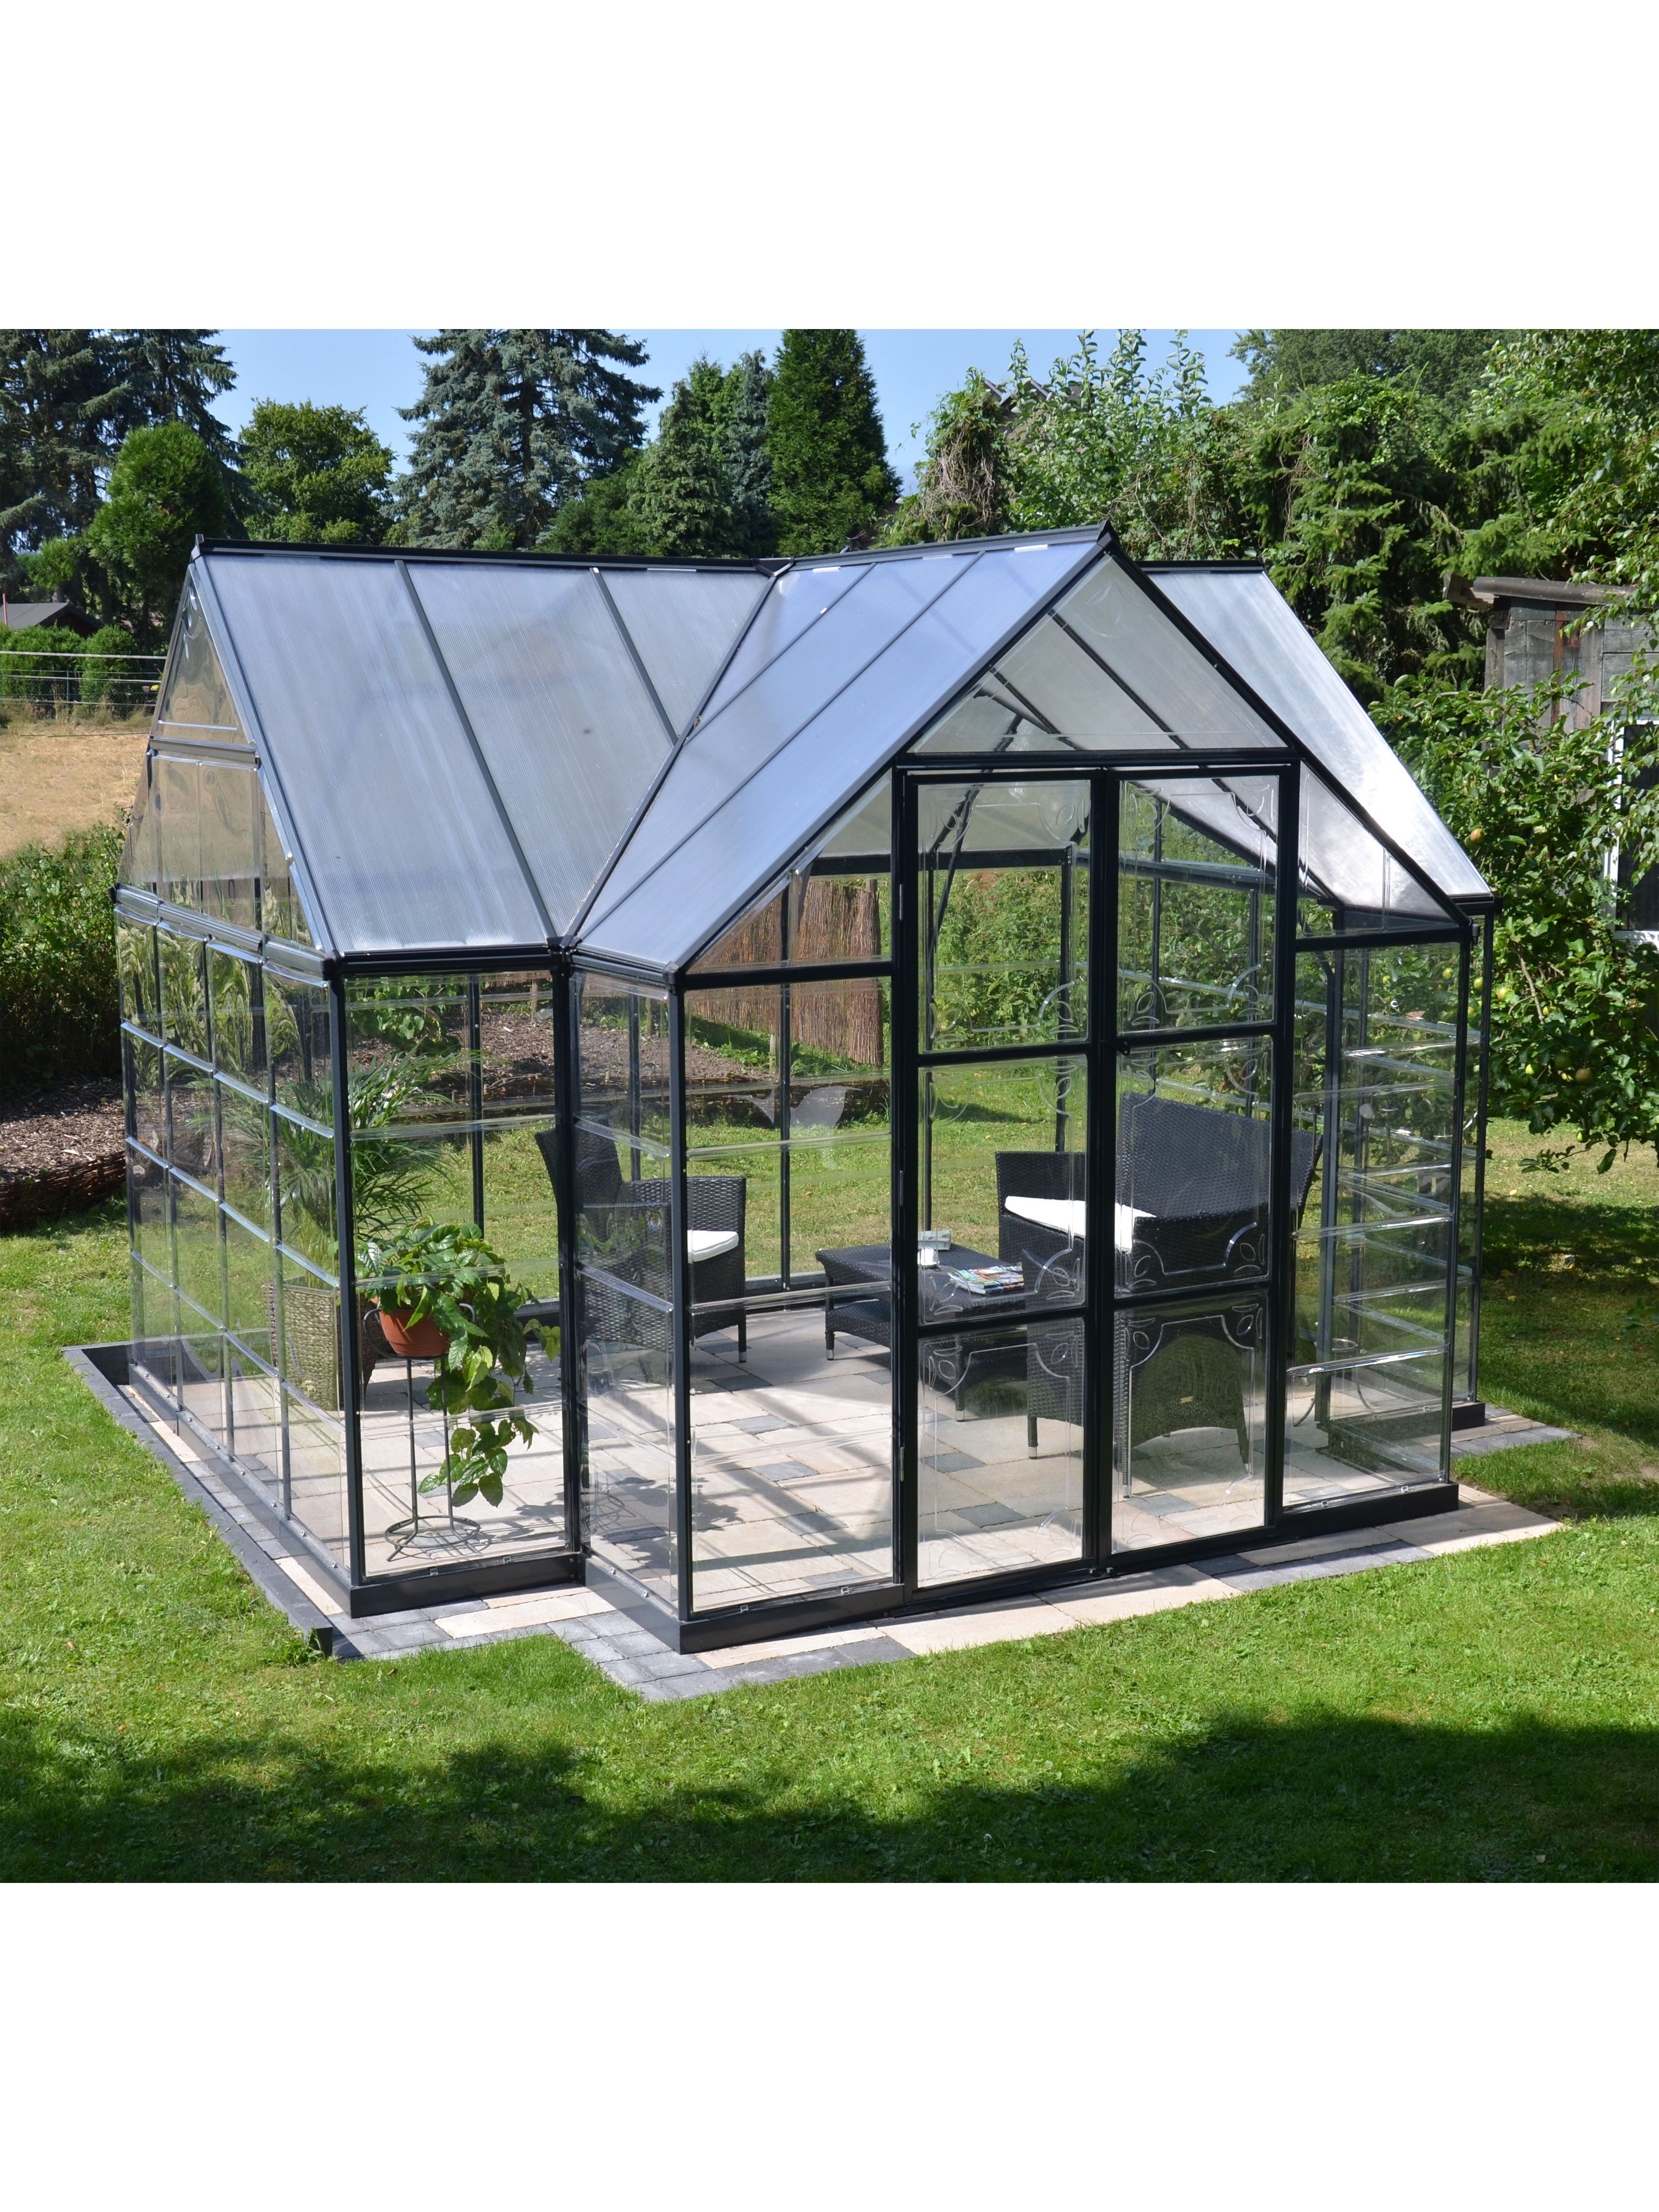 The green house mere - Victory Orangery Greenhouse Gardeners Com